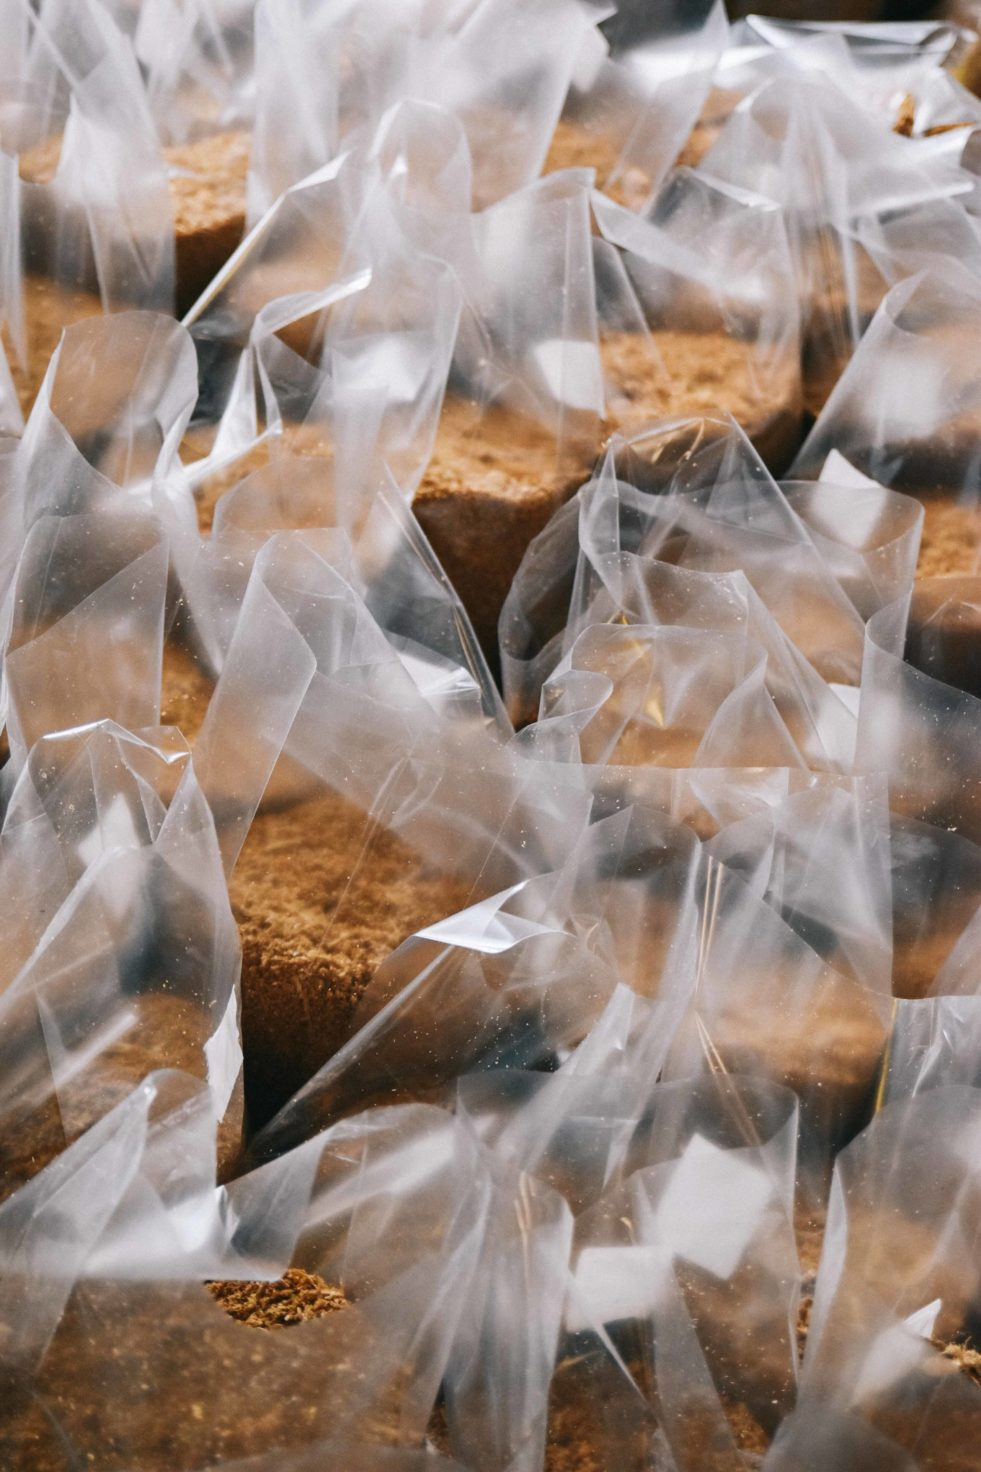 Mushroom growing supplies include filter patch bags.